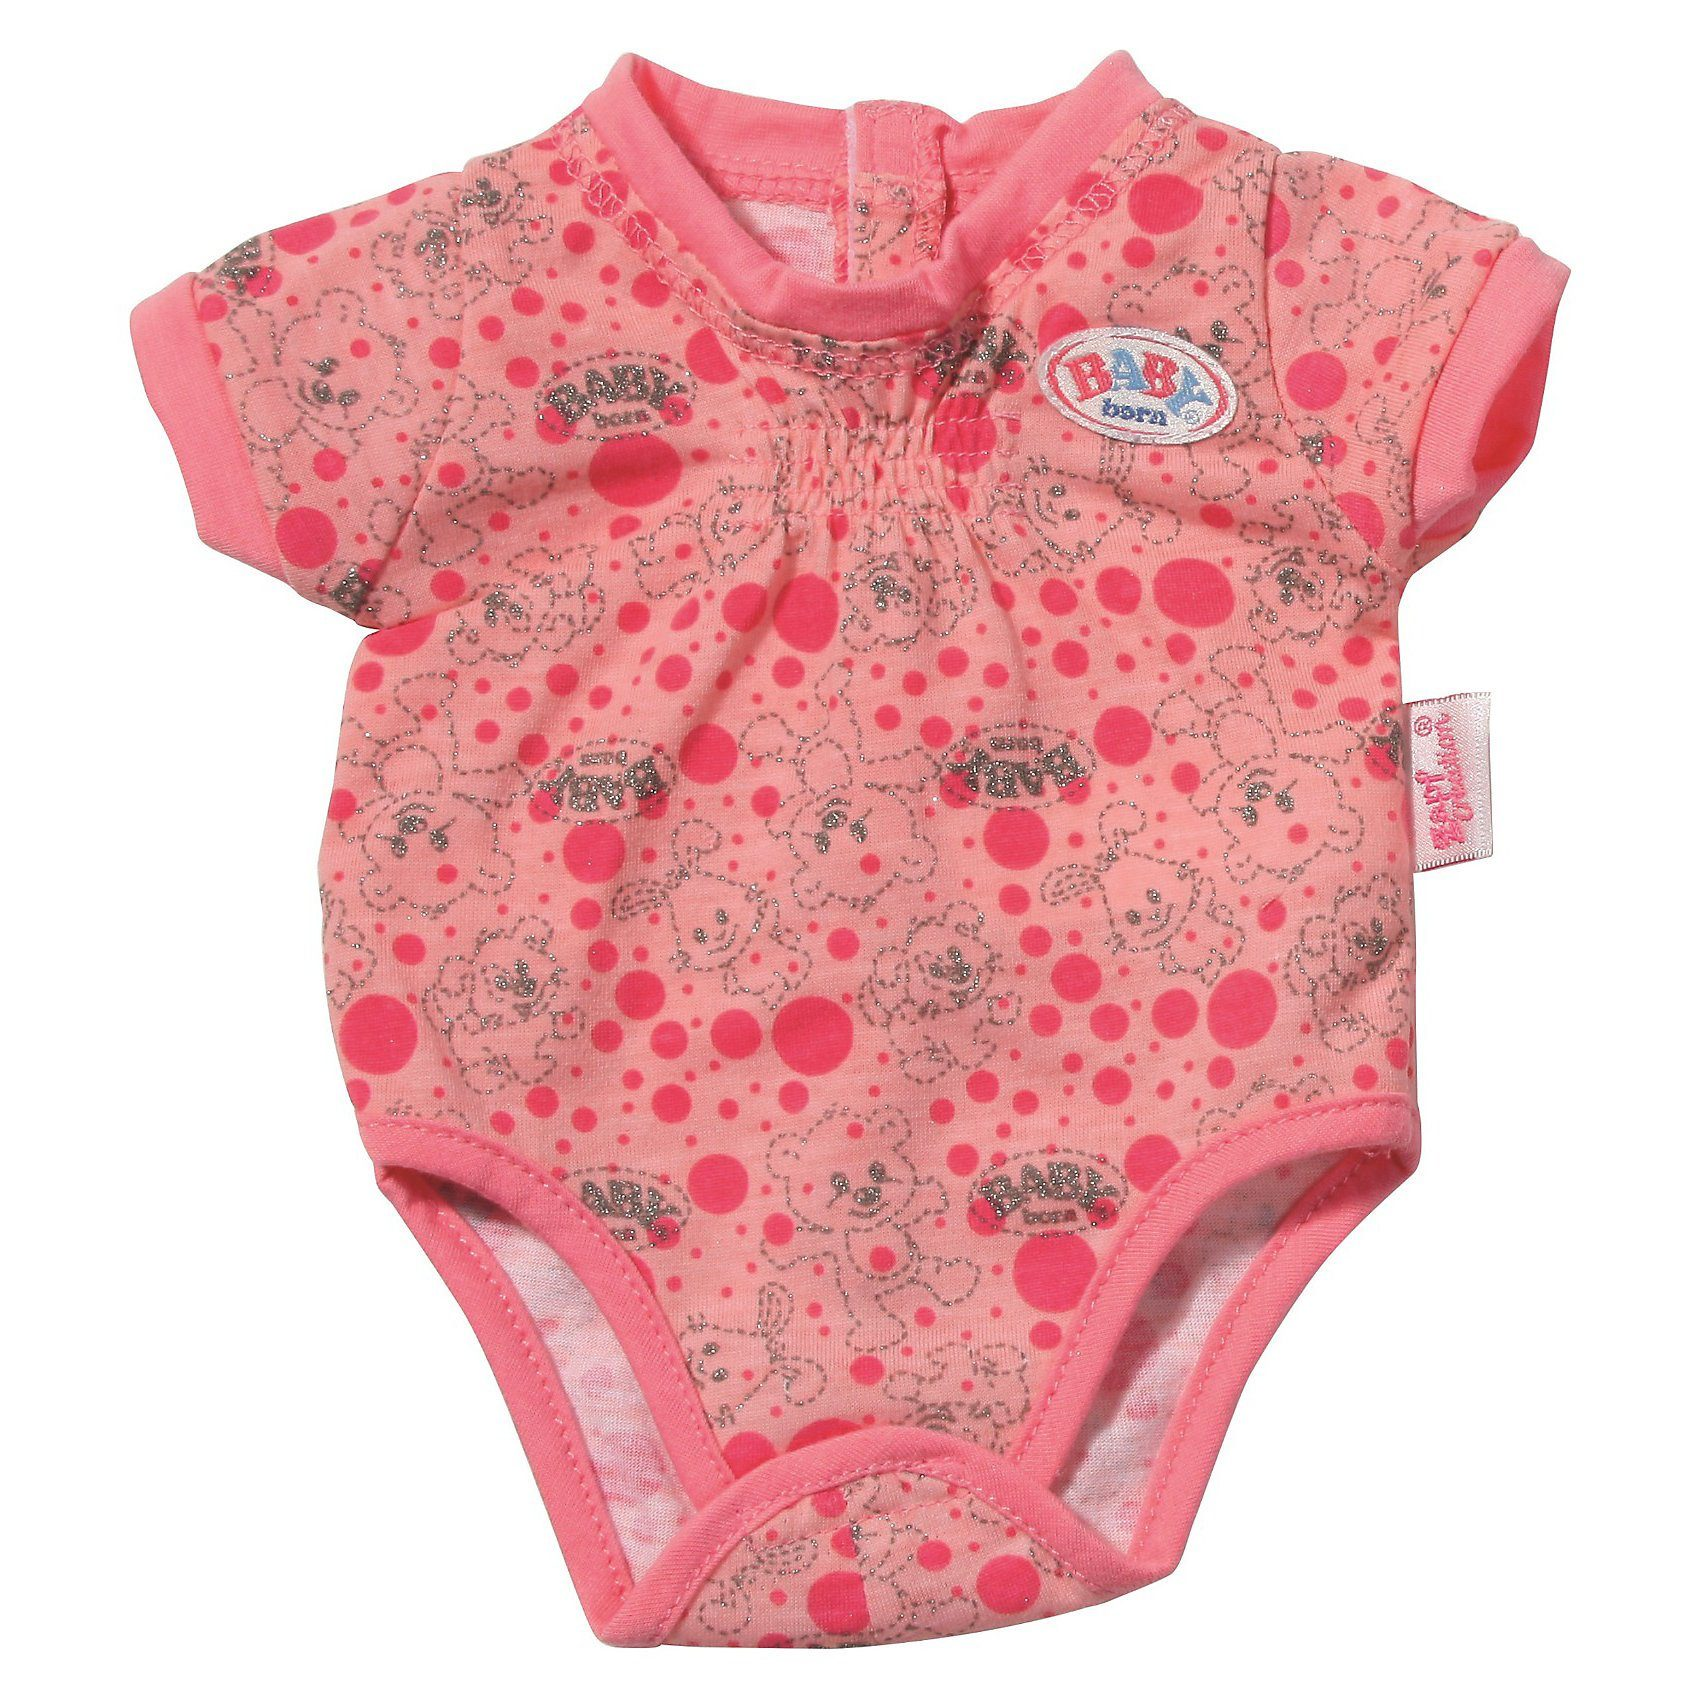 Zapf Creation BABY born® Puppenkleidung Body Collection Rosa, 43 cm